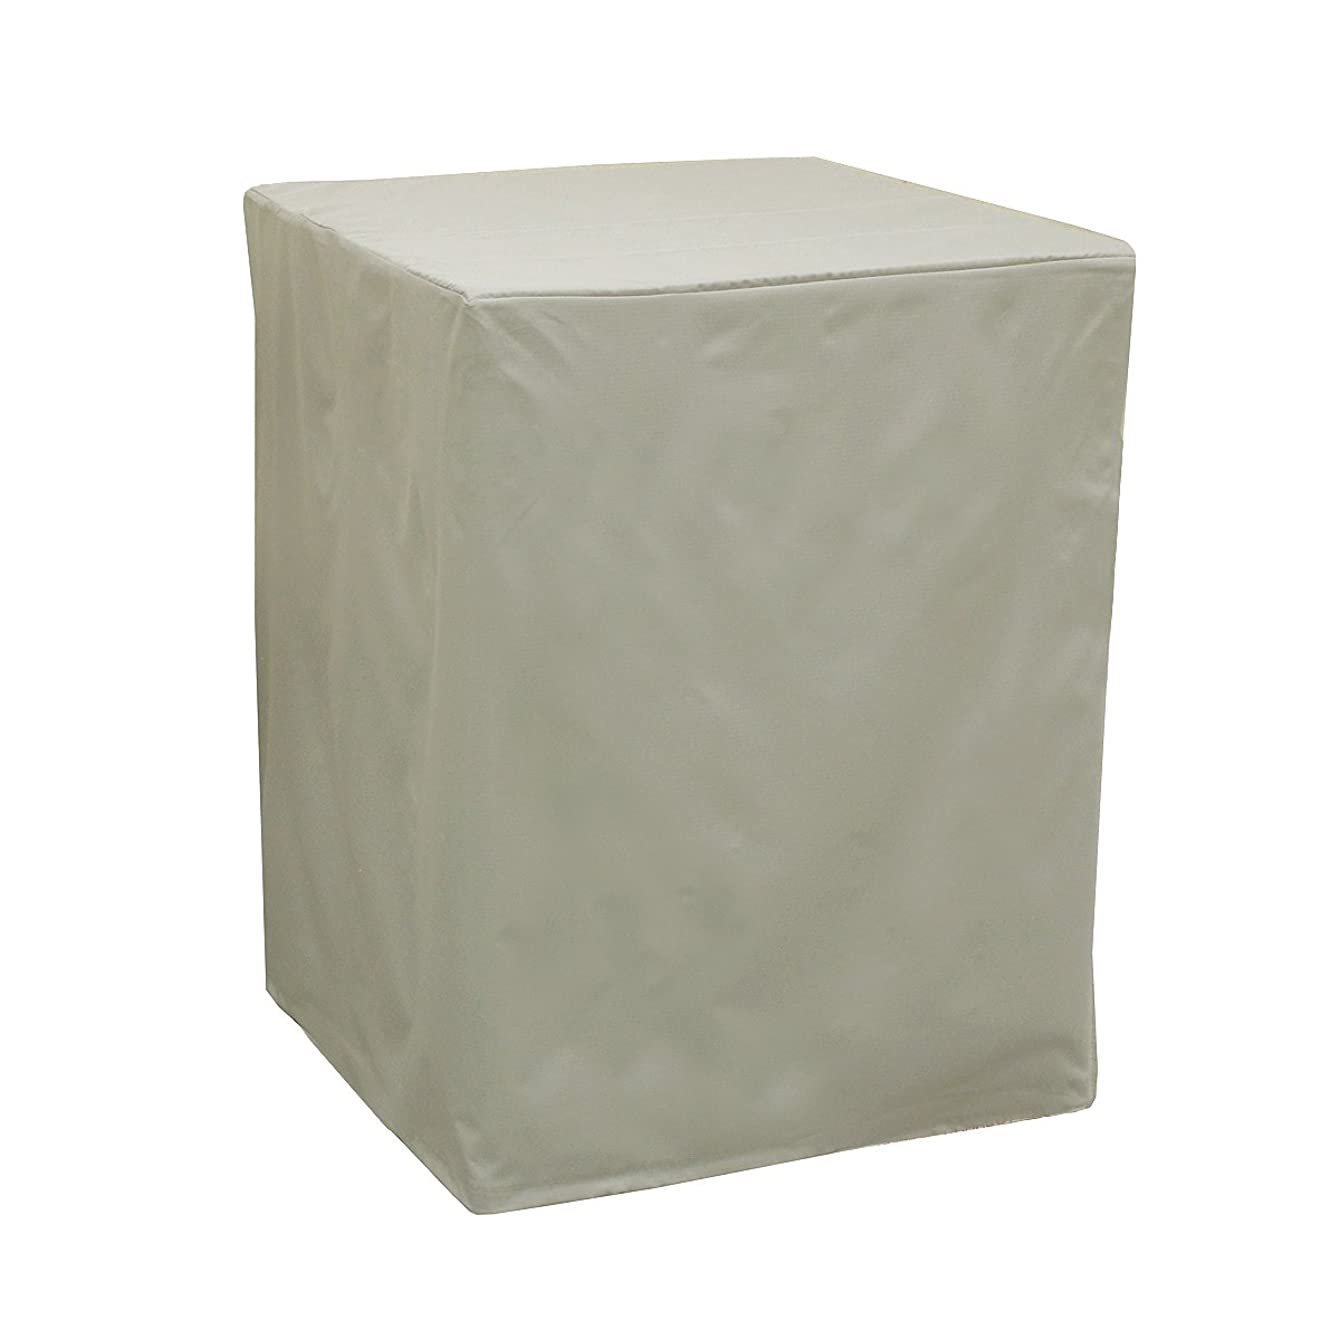 Dial Manufacturing Evaporative Cooler Cover - Down Draft - 42